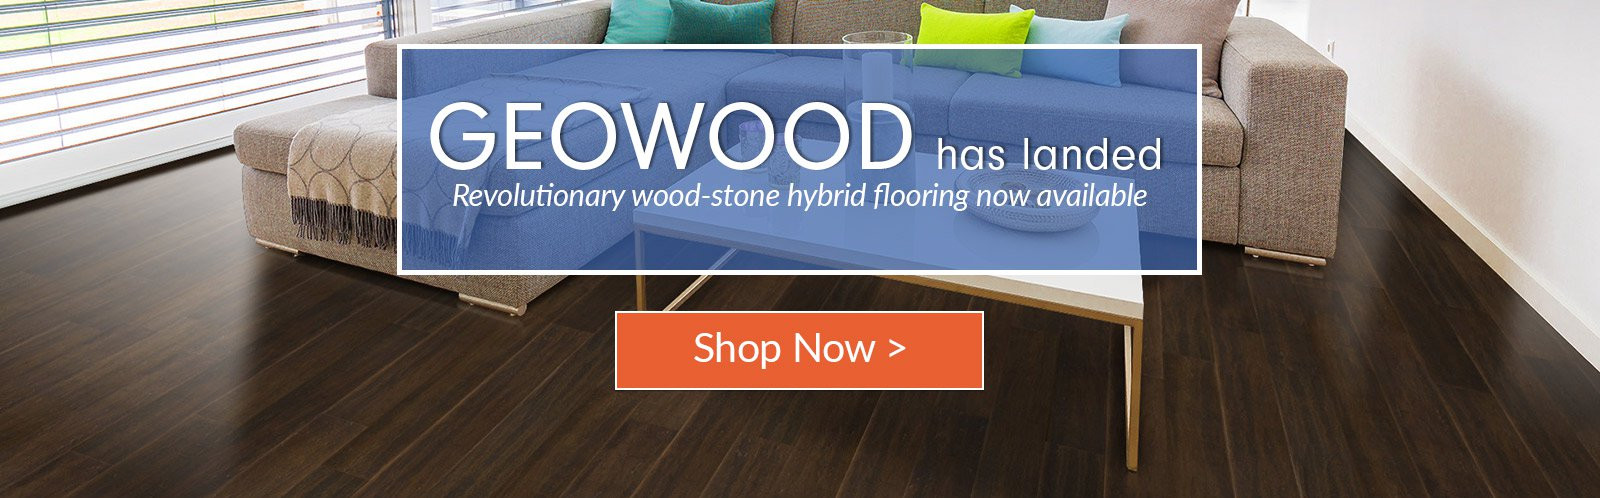 26 Fashionable Hardwood Flooring Stores Reno Nv 2021 free download hardwood flooring stores reno nv of green building construction materials and home decor cali bamboo with regard to geowood launch homepage slider